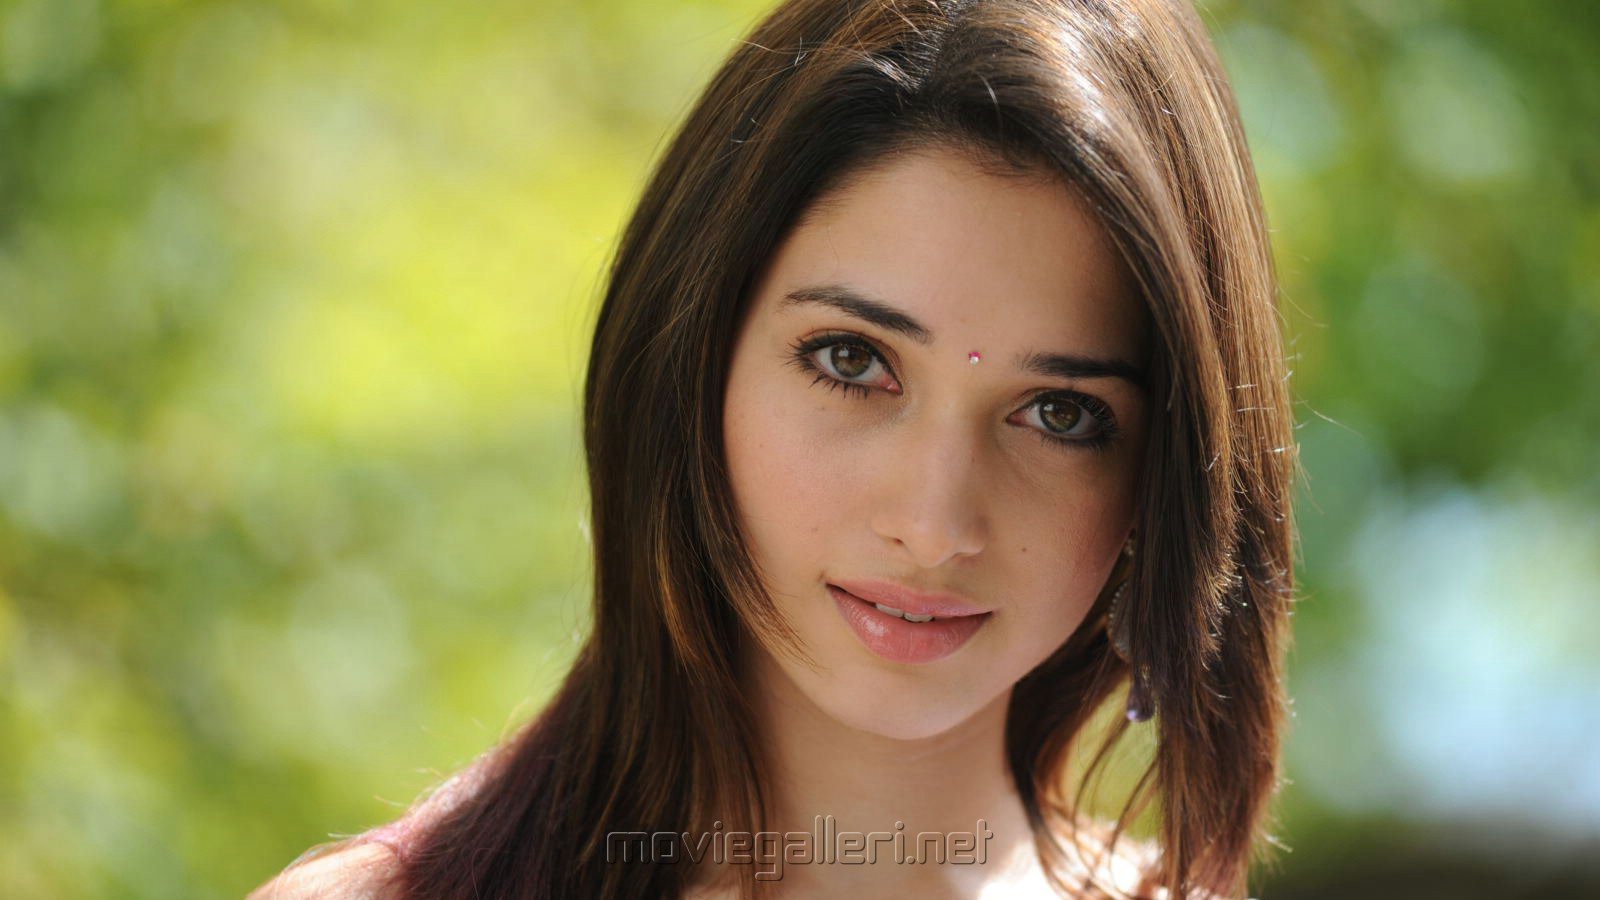 wallpapers tagged with tamanna tamanna hd wallpapers page 1600x900